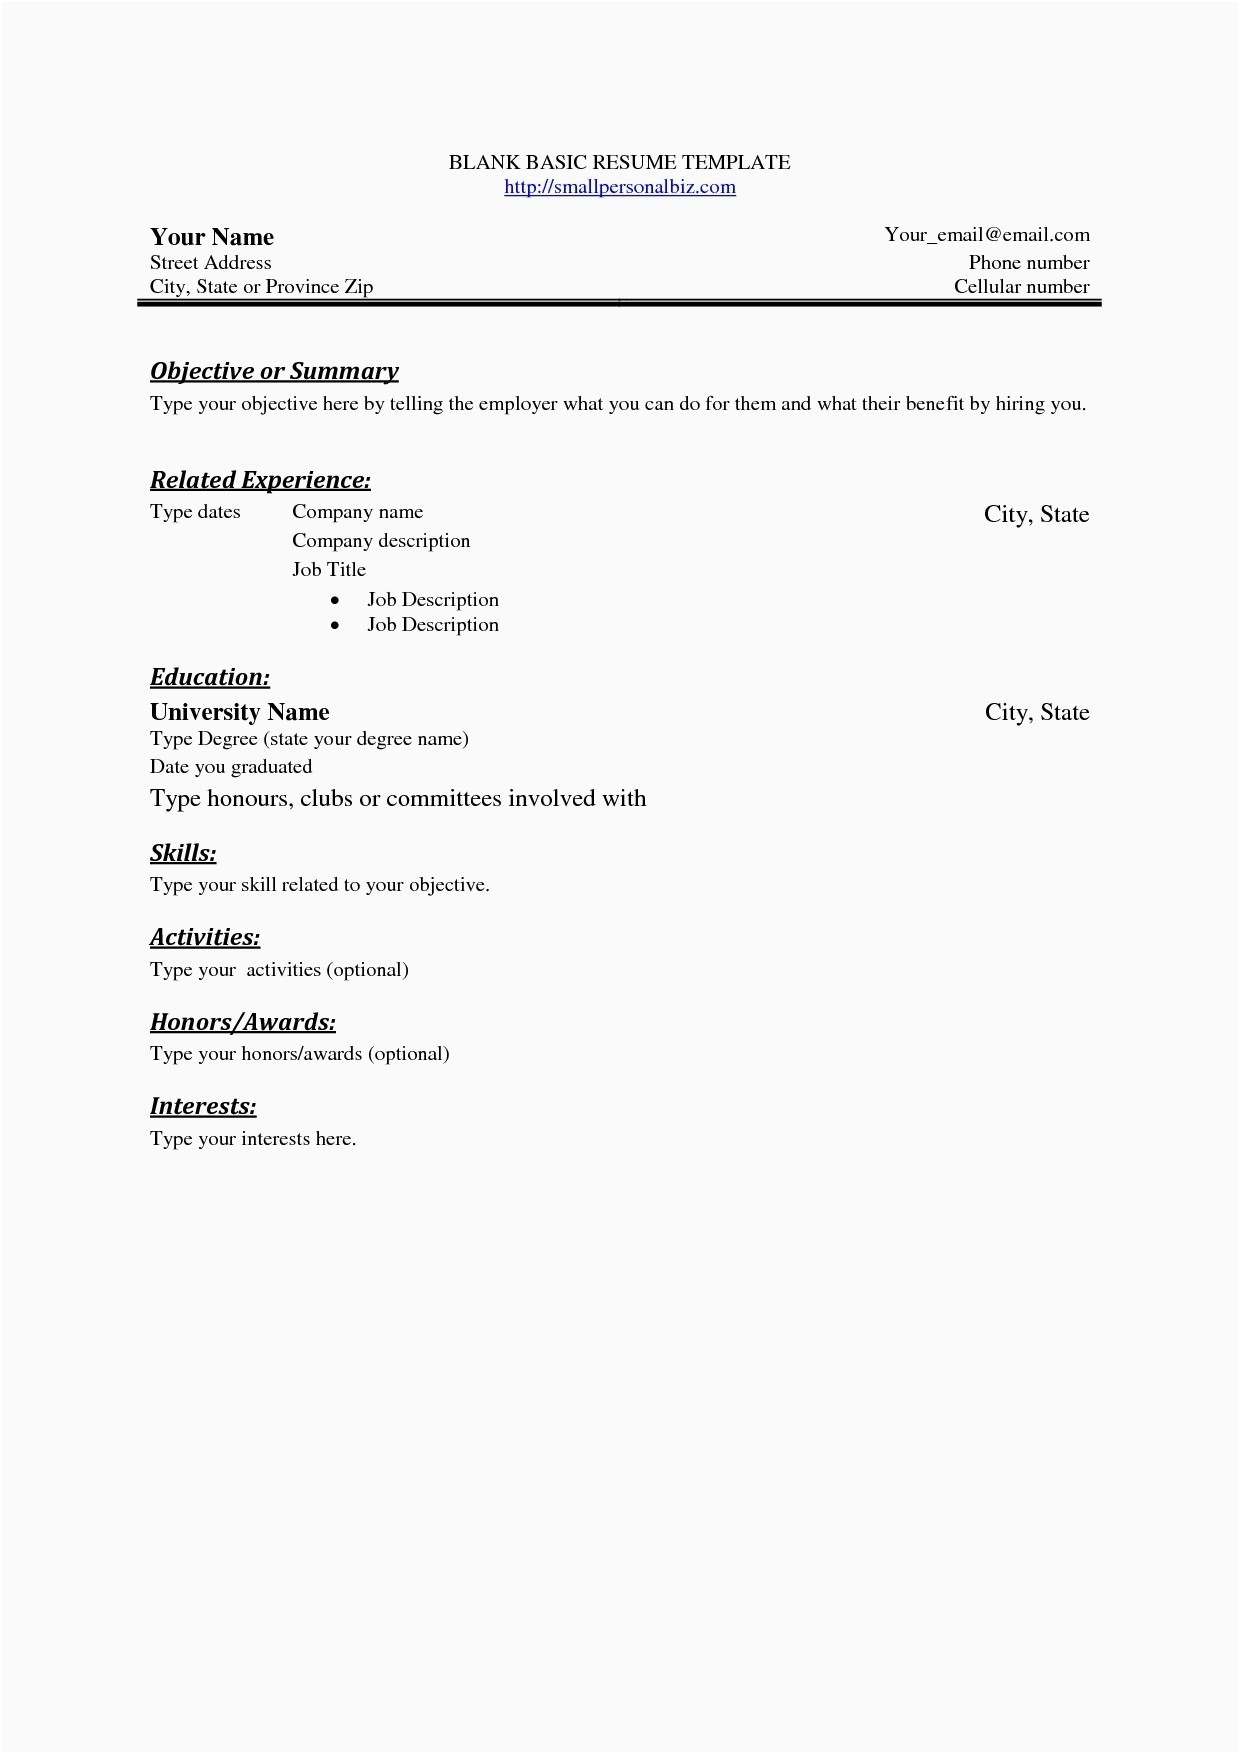 Resume Template for Actors - Free Cease and Desist Letter Template 2018 Cfo Resume Template